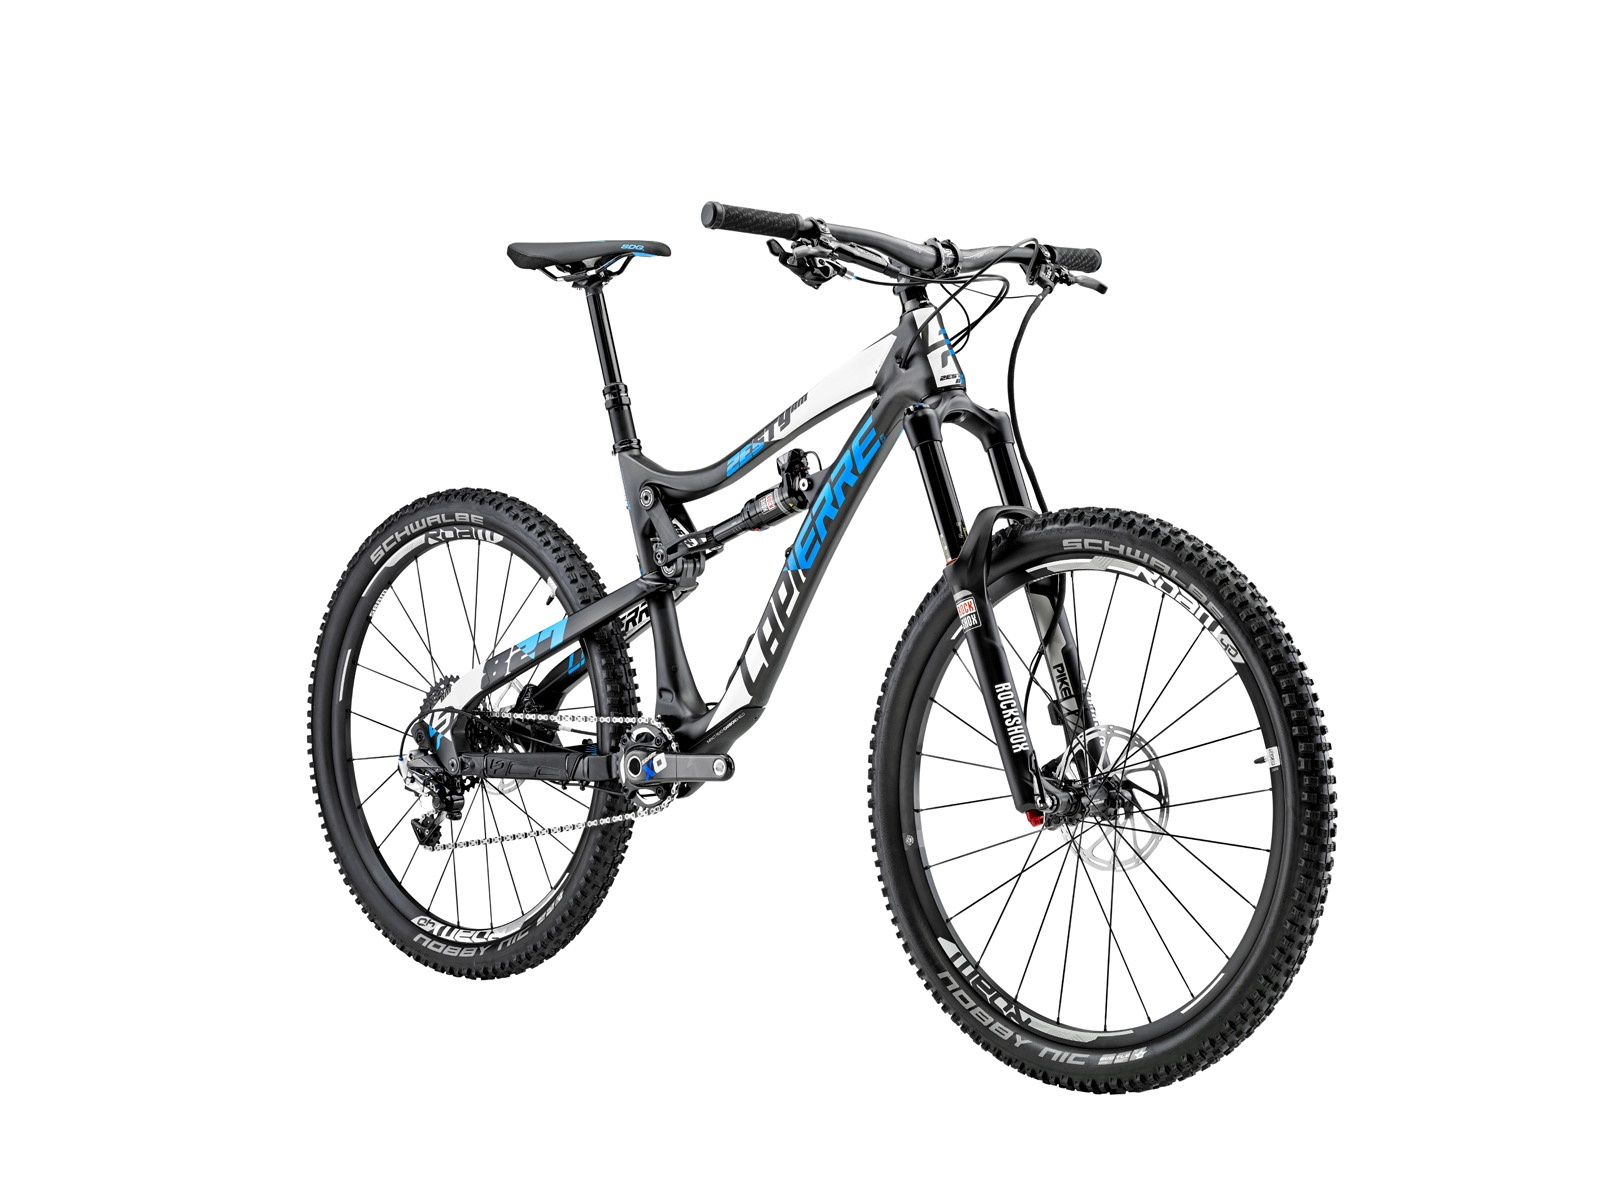 VTT Lapierre Zesty AM 827 E:I Shock